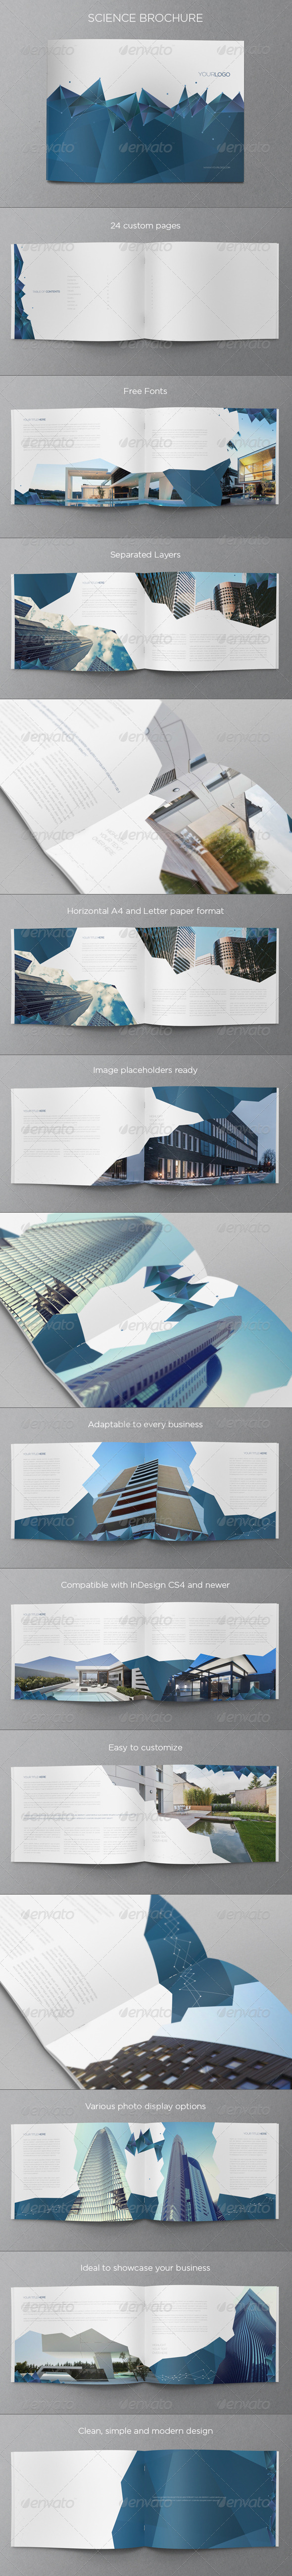 GraphicRiver Science Brochure 5680739